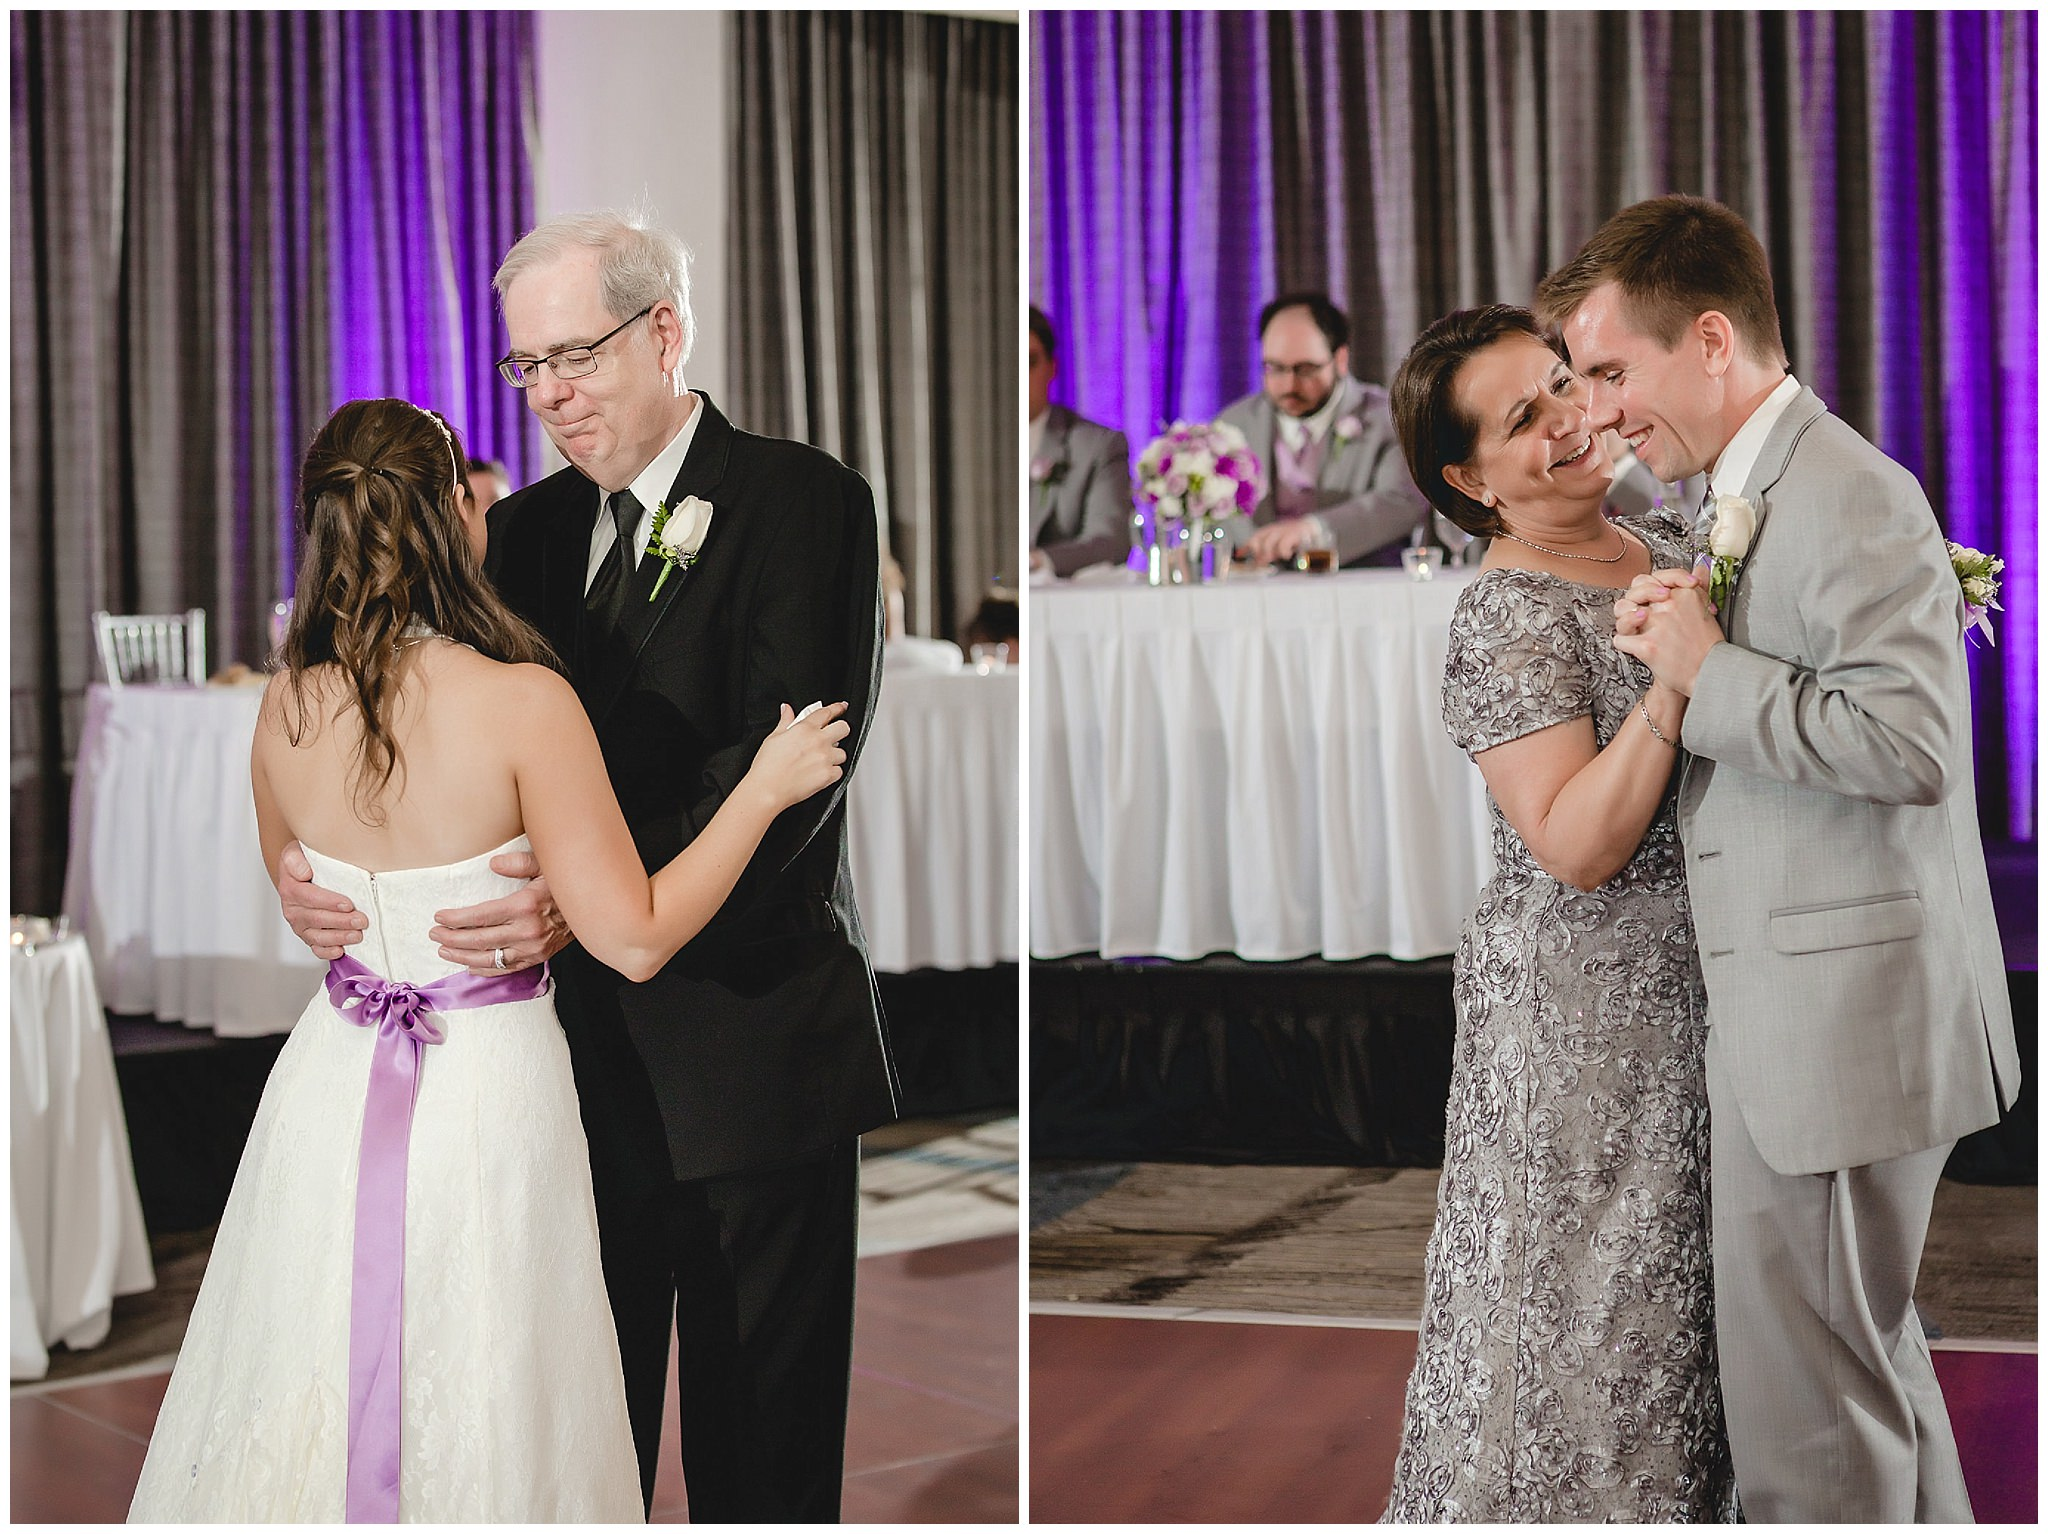 Father-daughter and mother-son dances at the Pittsburgh Airport Marriott